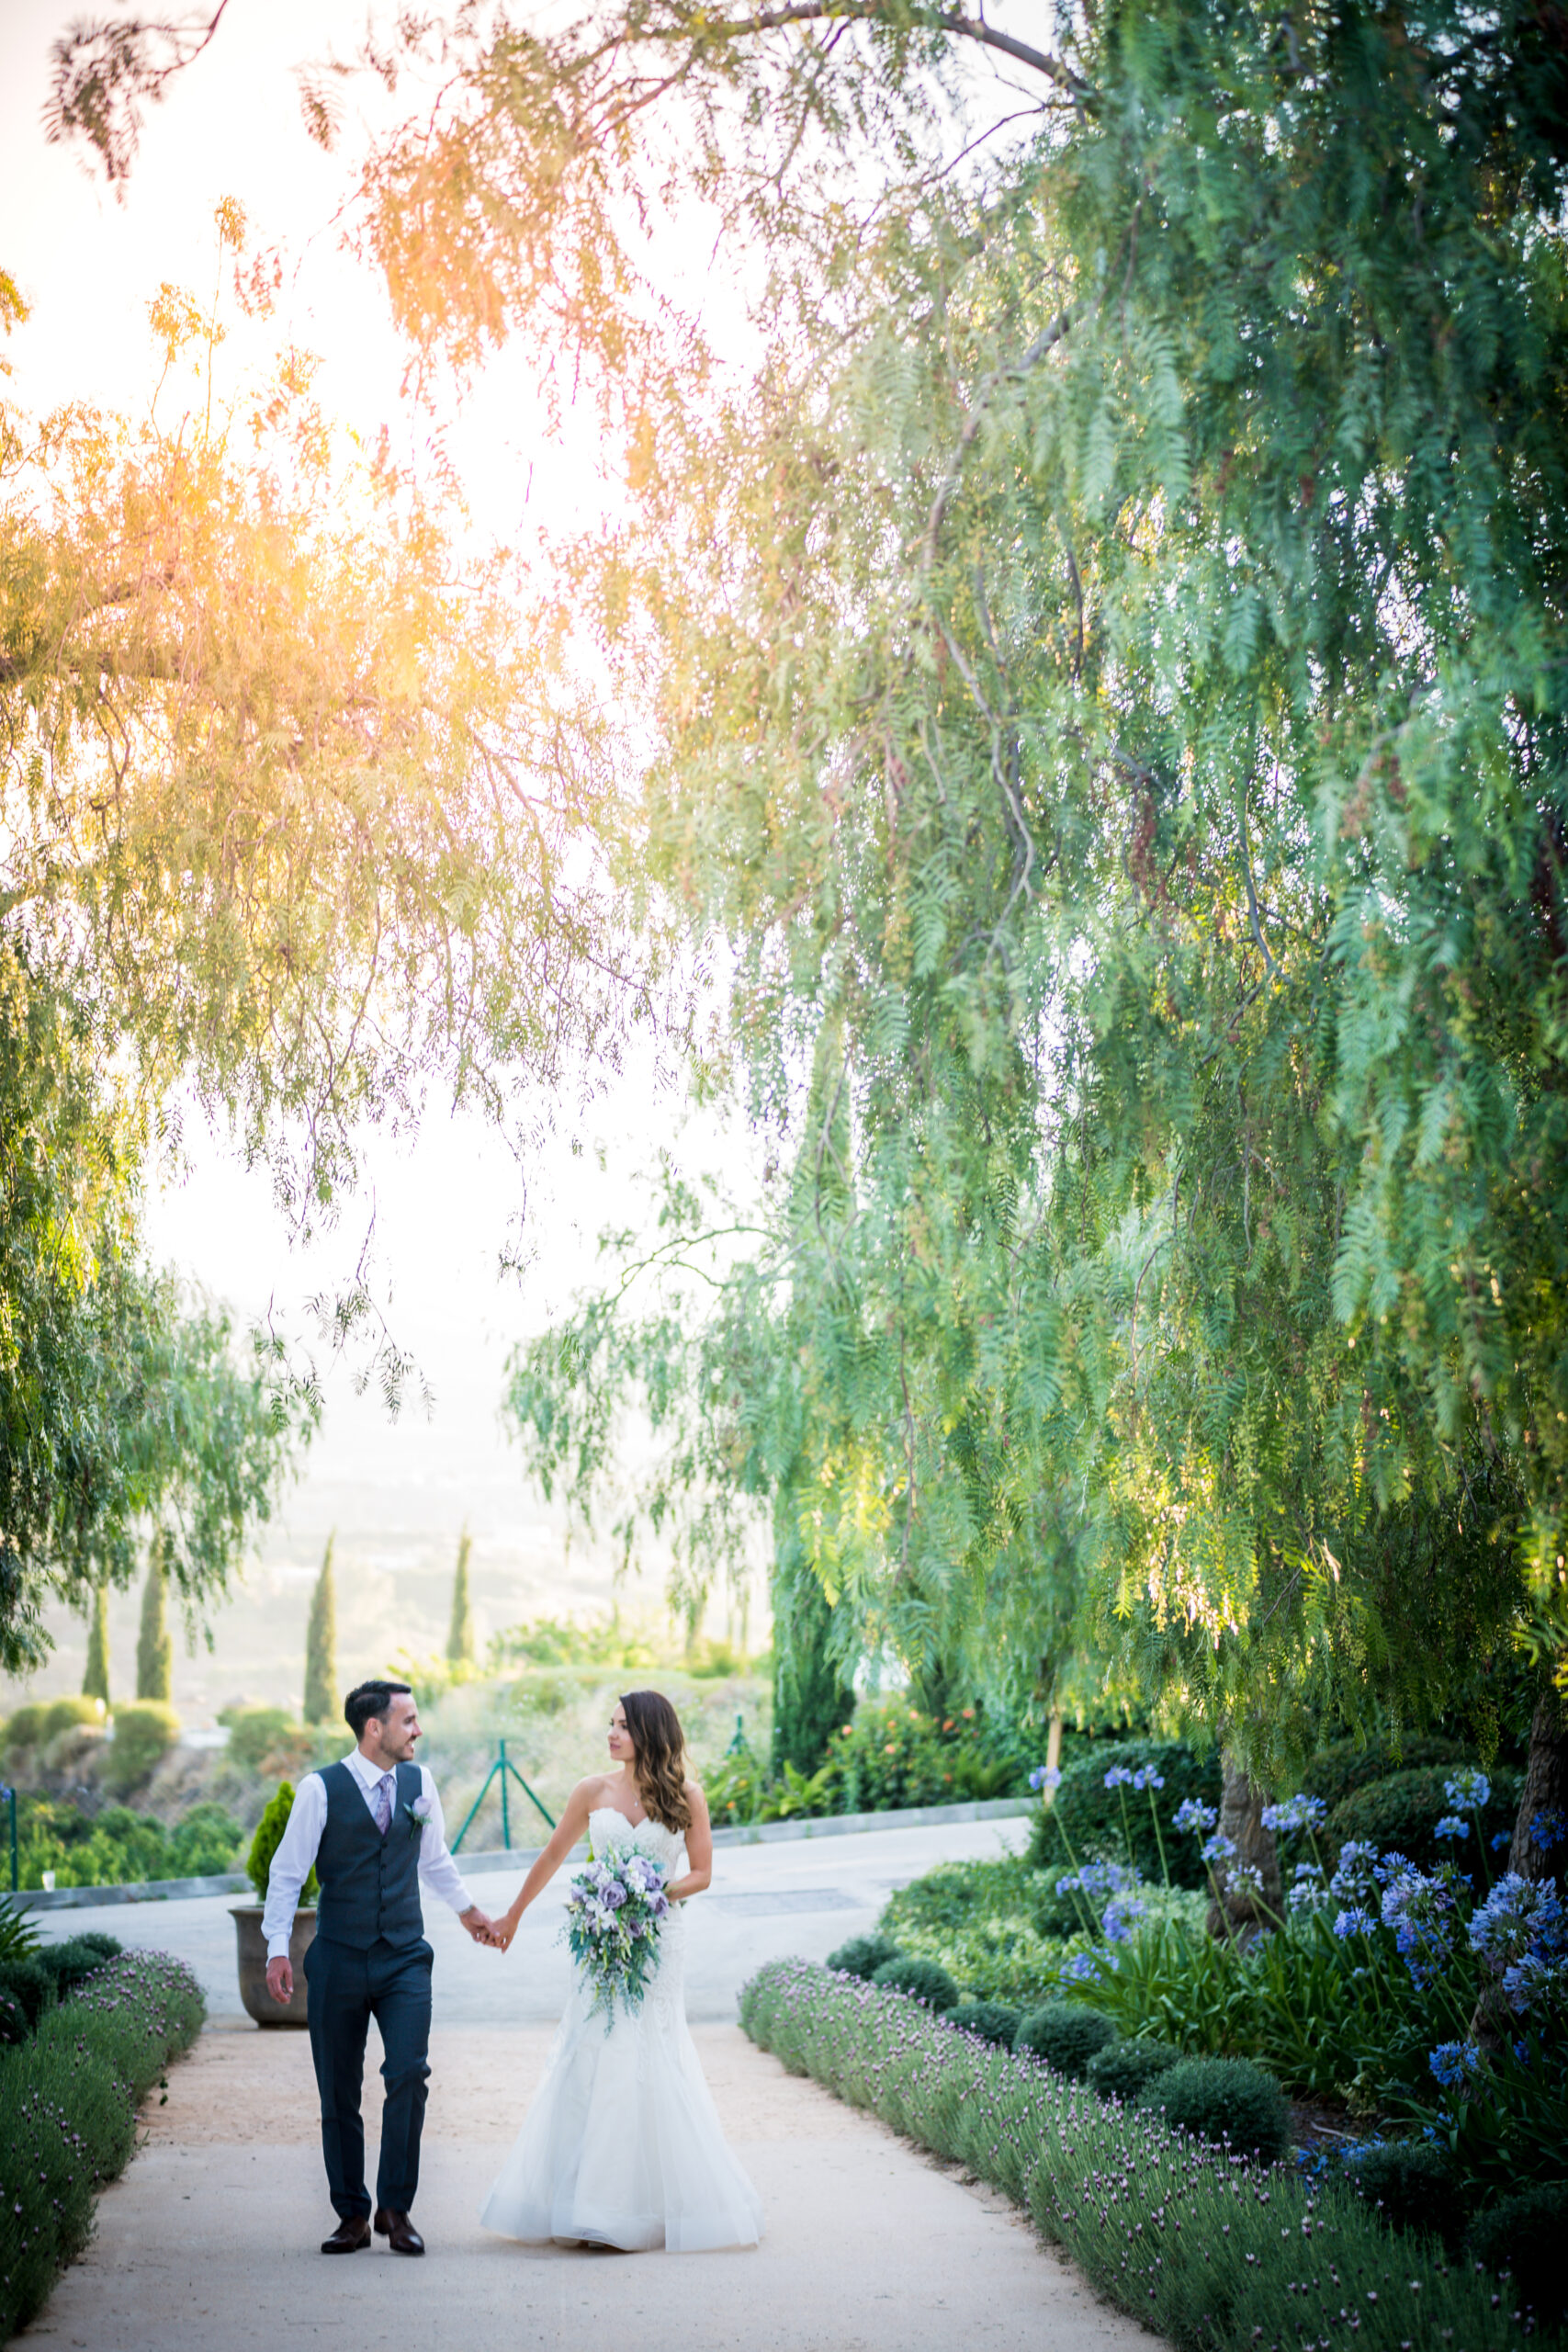 The bride and groom in the grounds of the Cortijo - Rebecca Davidson Photography